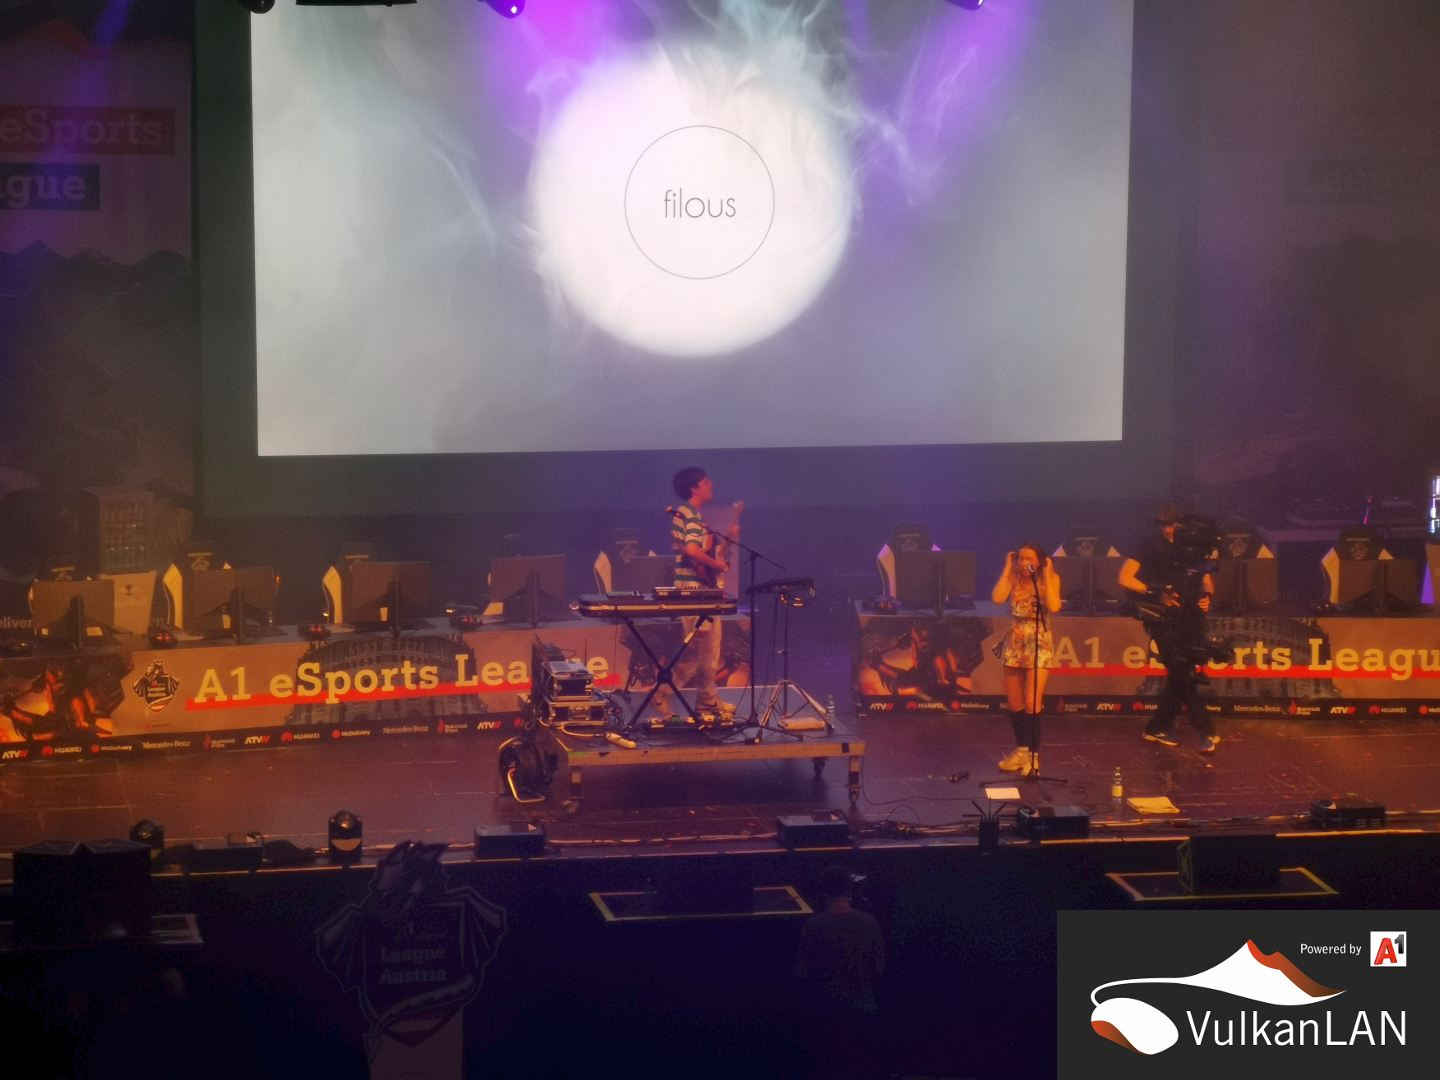 A1 E Sport Finale 2019 20190615 1903 26 IMG 20190615 190325 1440px